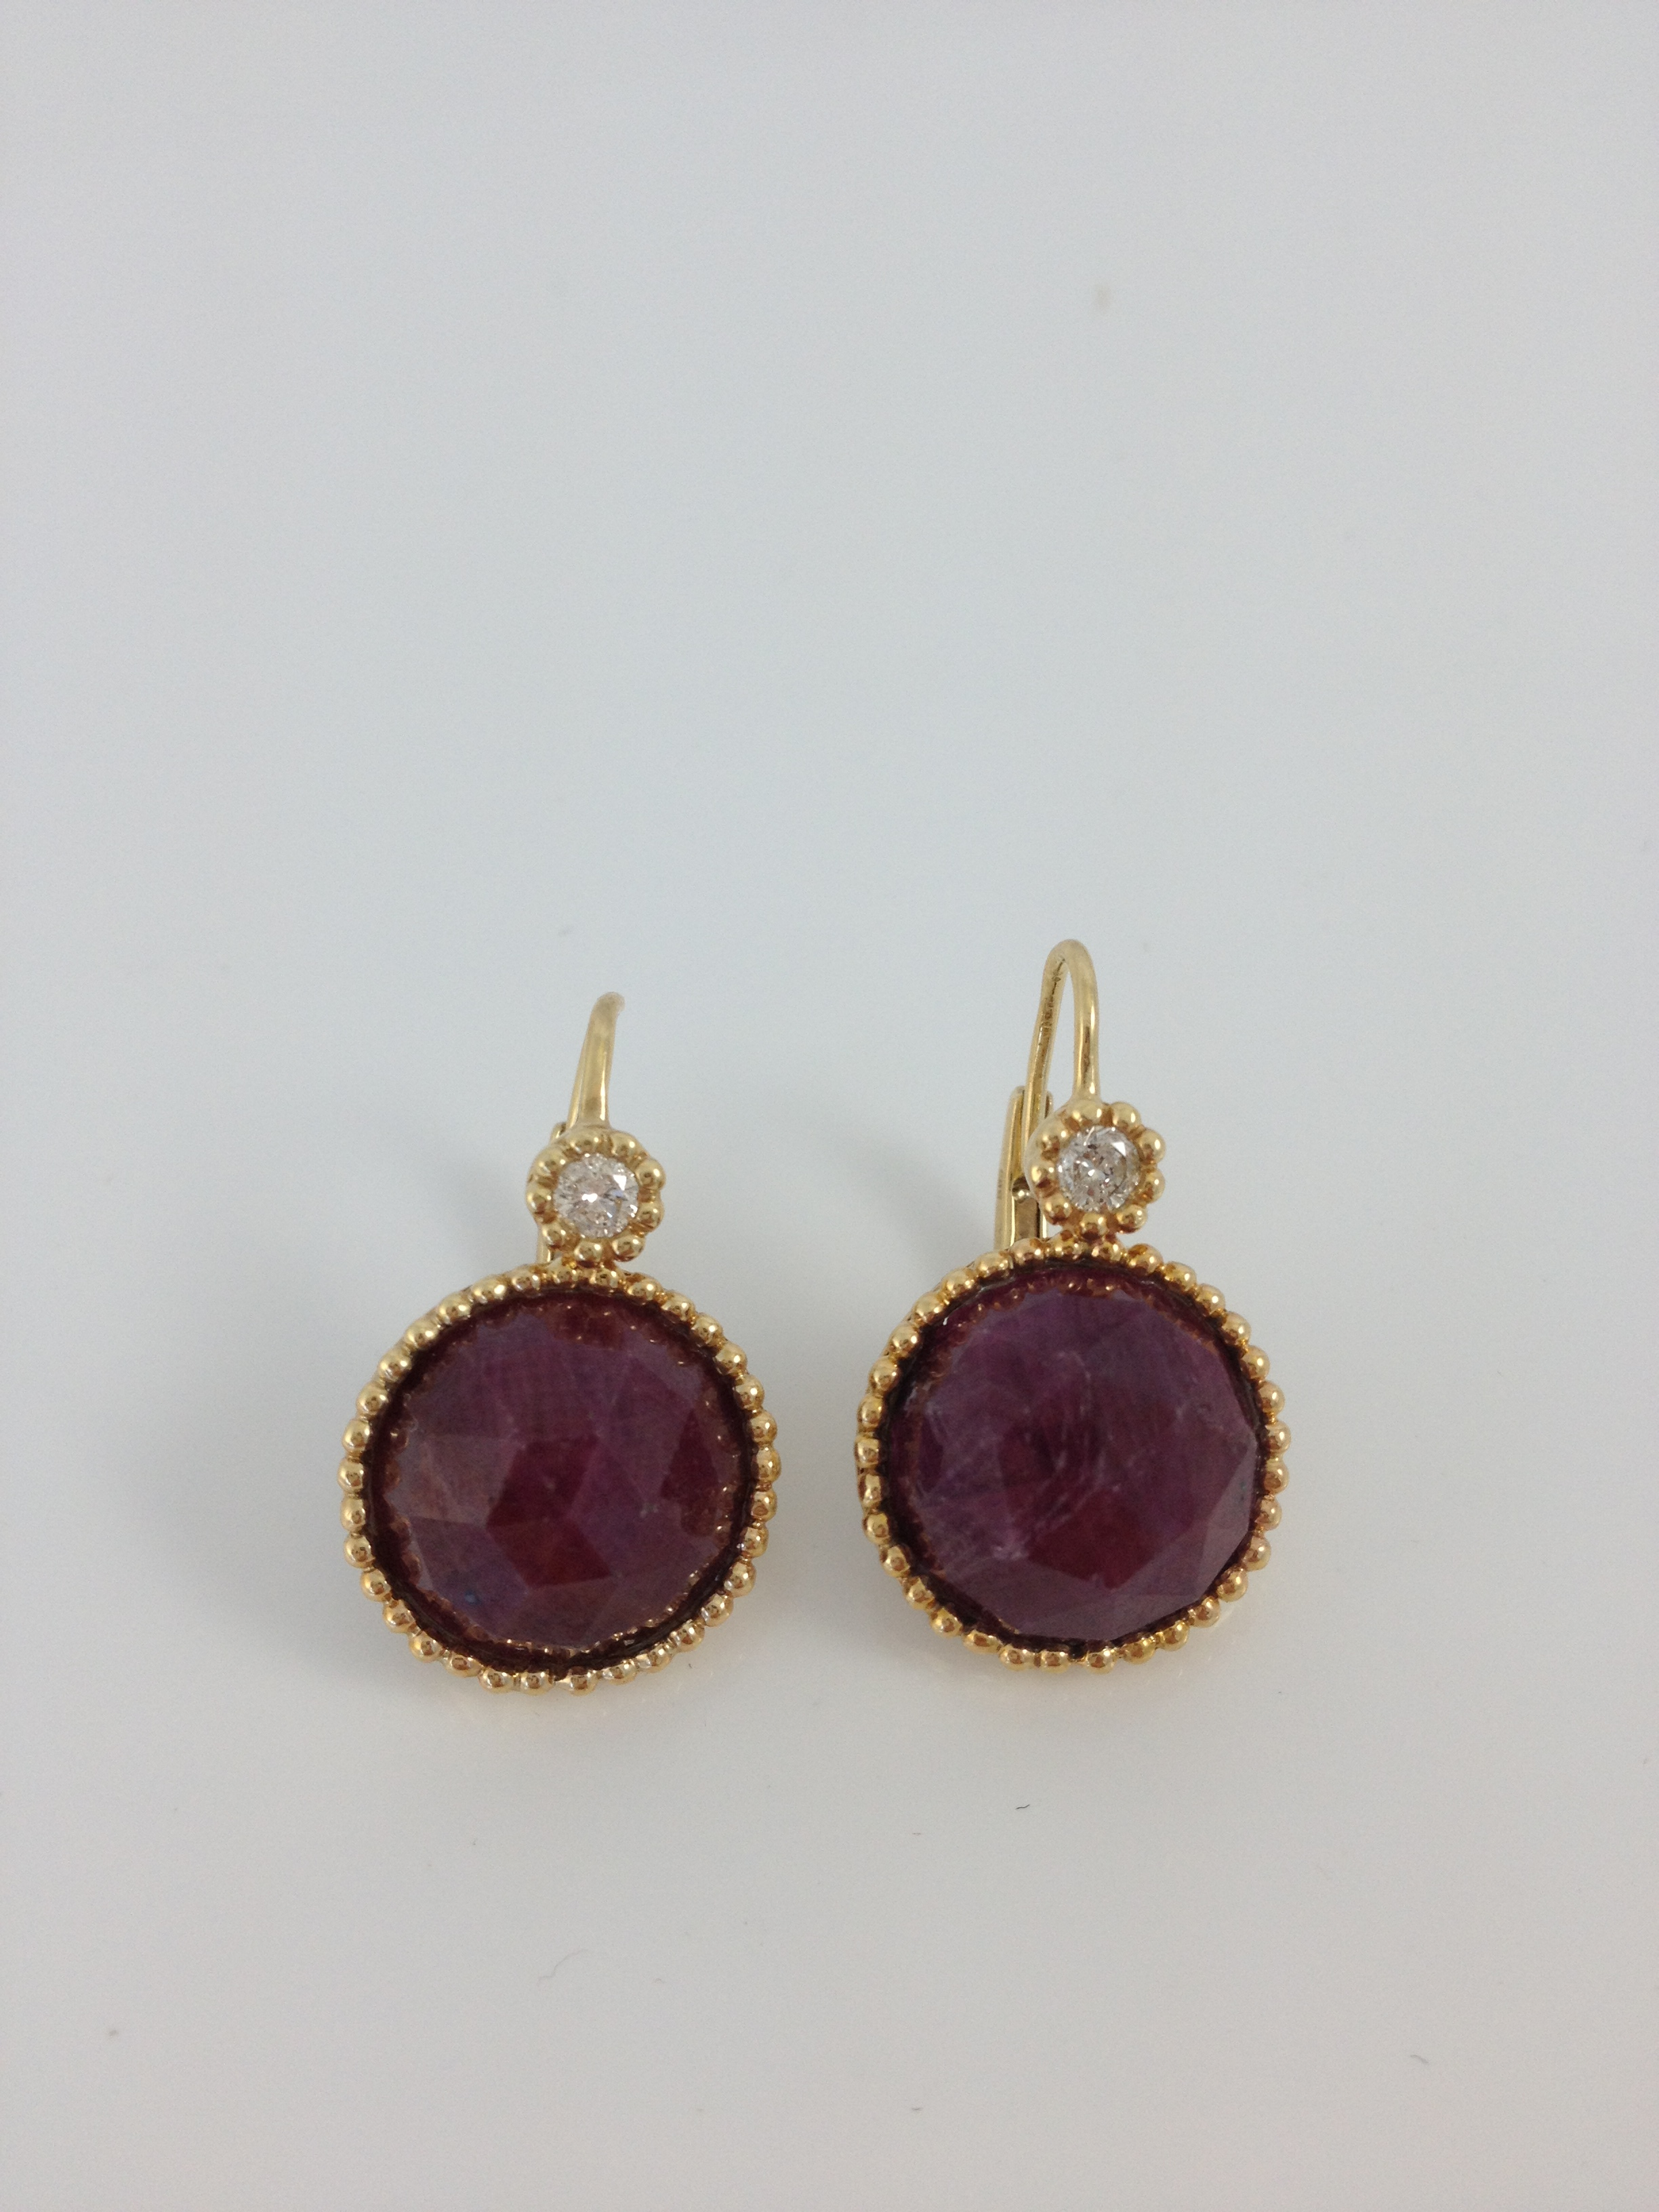 Bhurmese Ruby with Diamonds